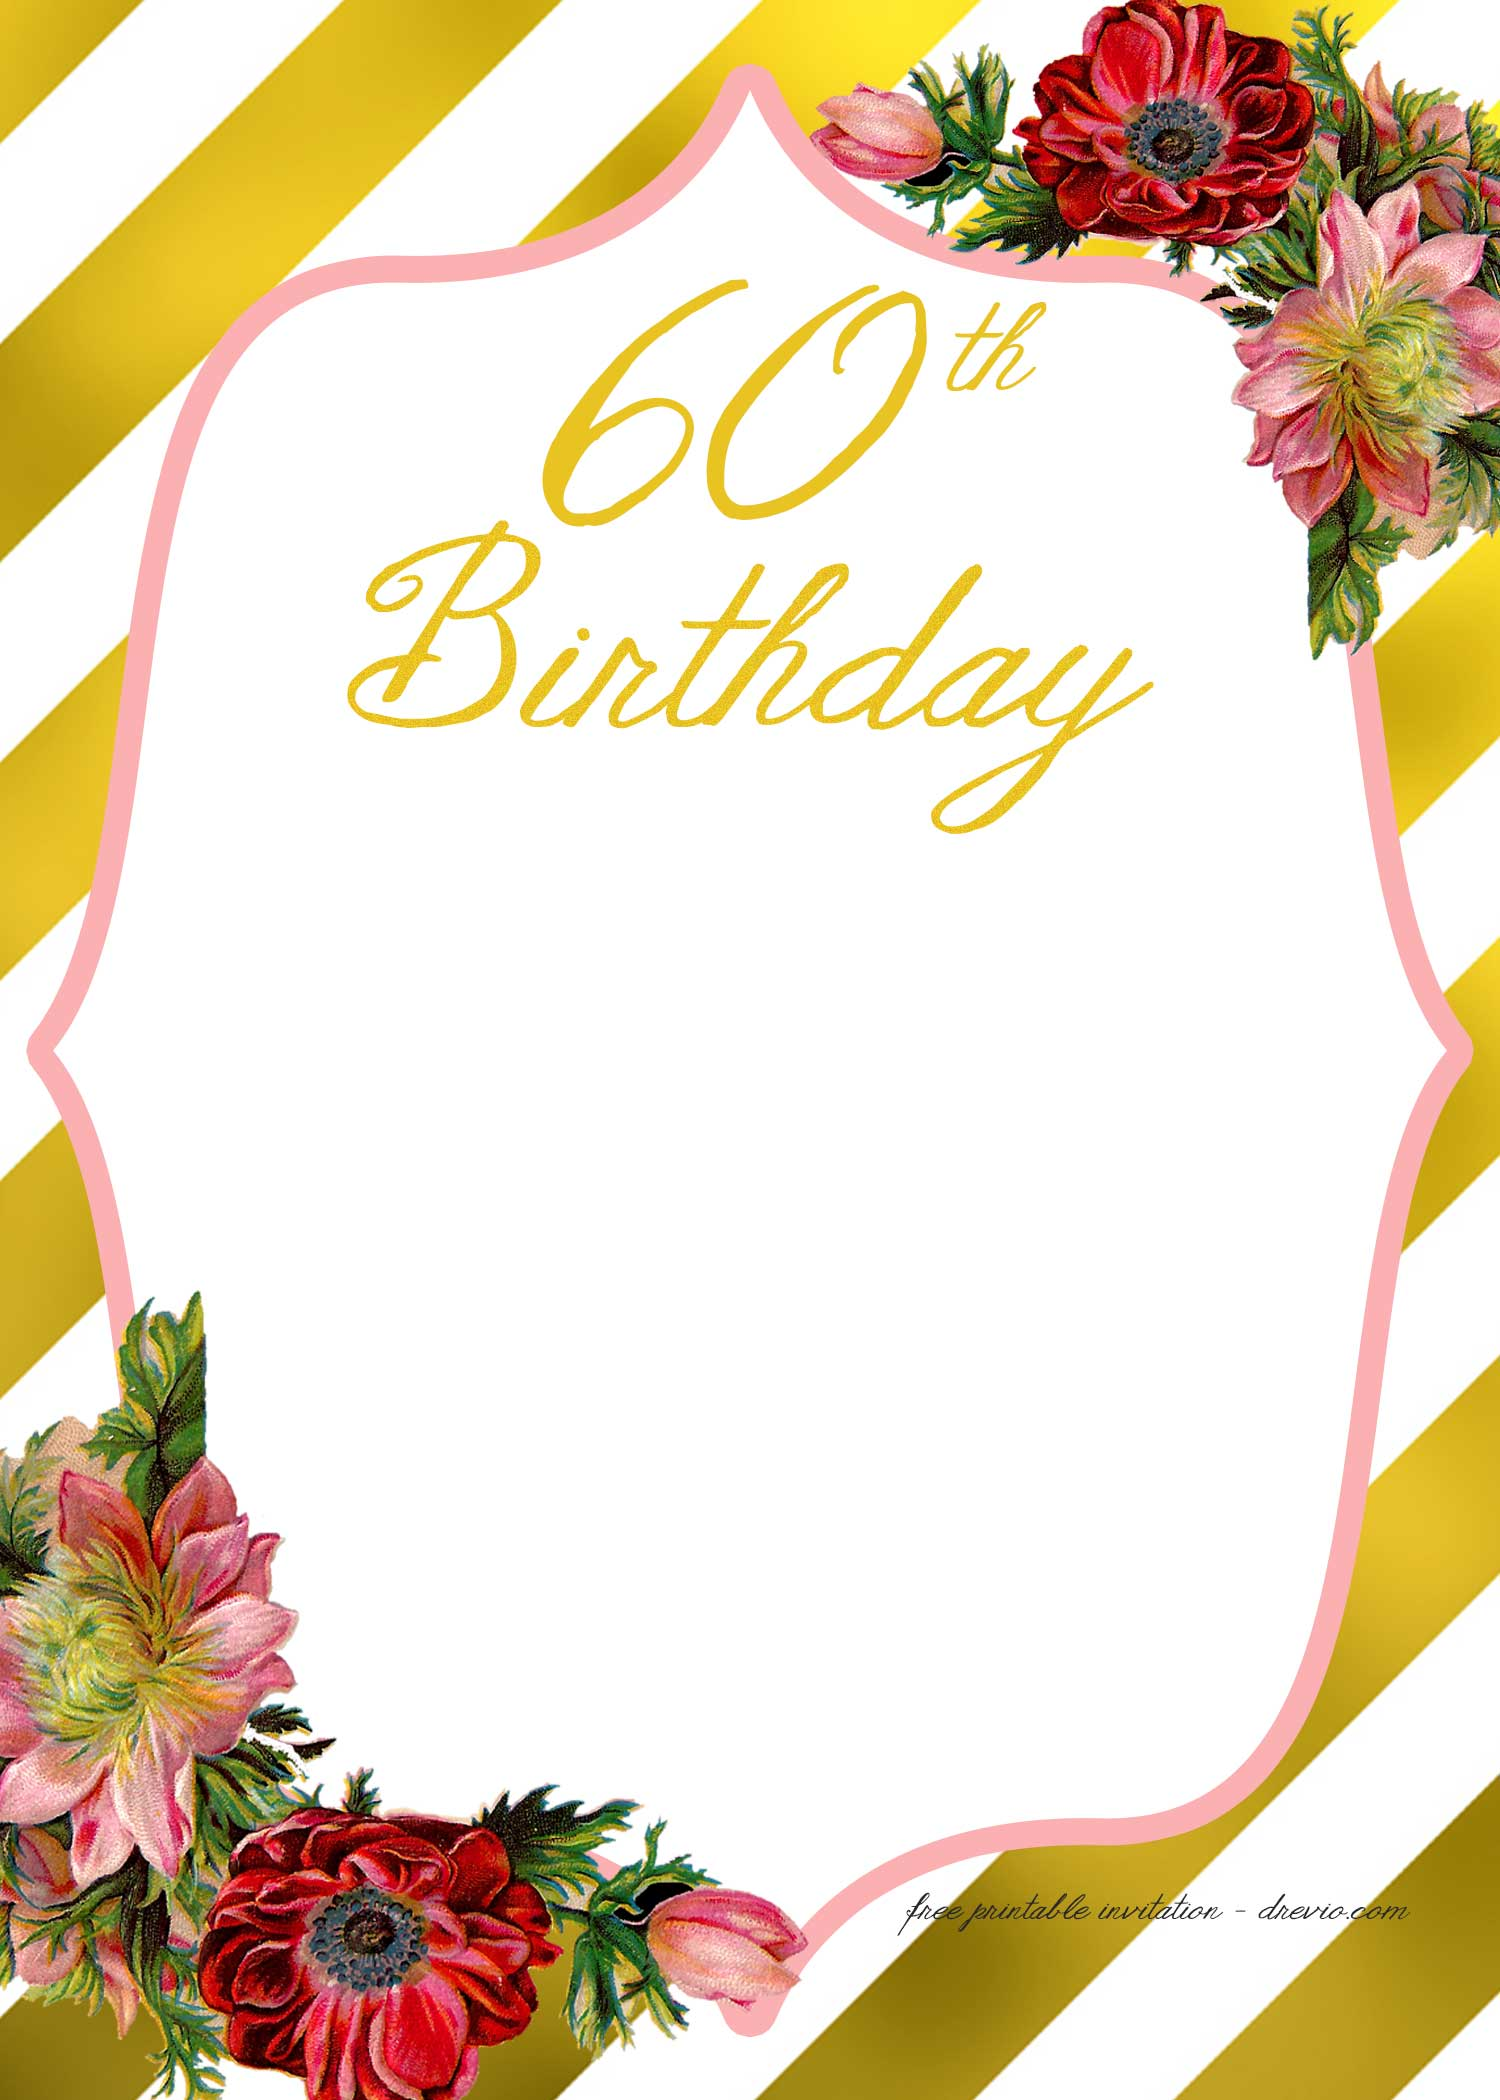 Write Down Your Birthday Party Details Like Time Date And Location Of Golden Age Dont Forget To The RSVP Too